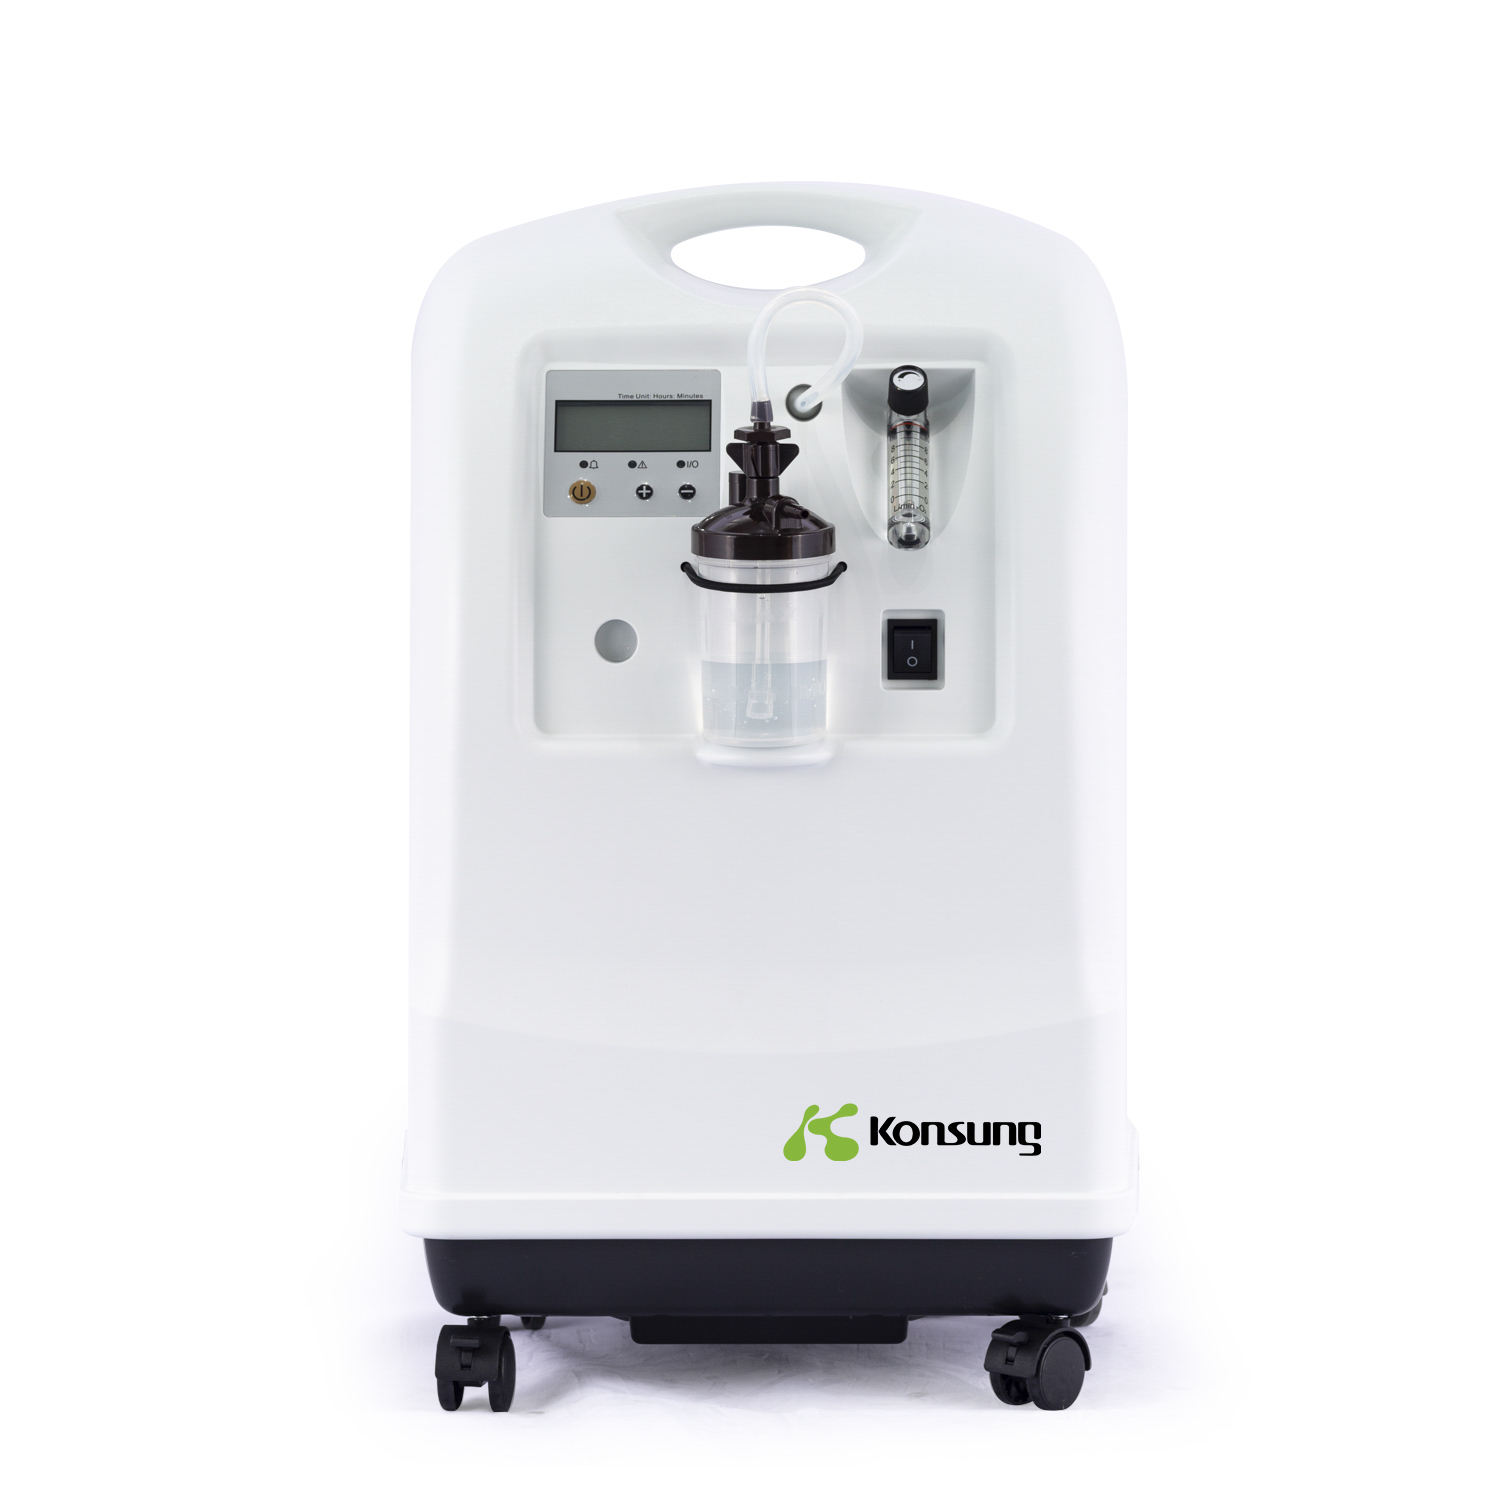 KSOC-10 low noise medical high flow 10l oxygen concentrator for hospital